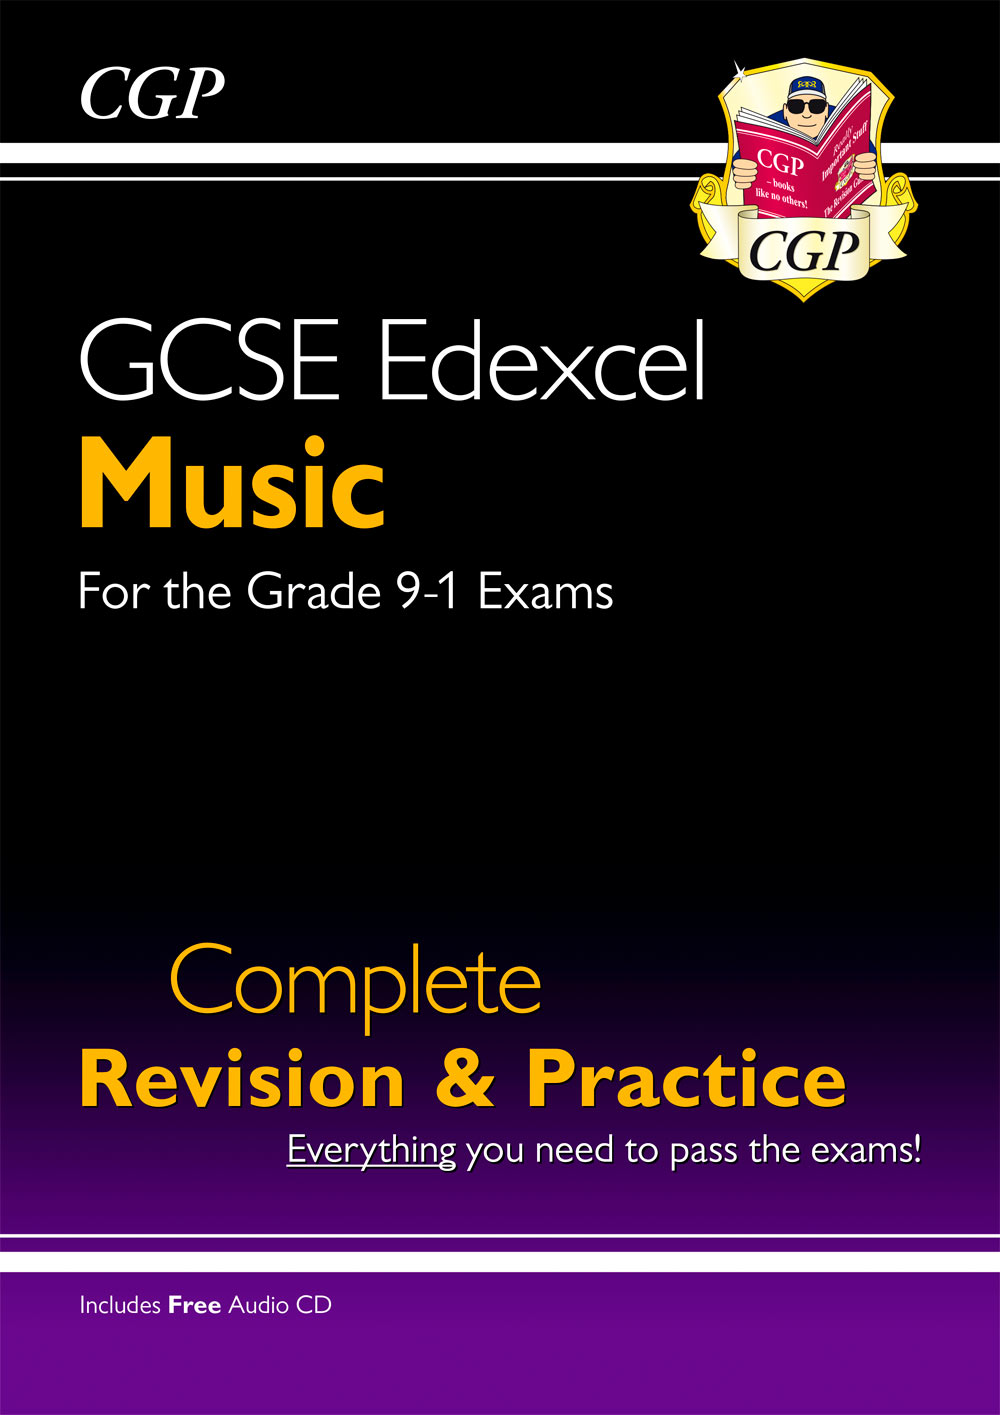 MUES41 - GCSE Music Edexcel Complete Revision & Practice (with Audio CD) - for the Grade 9-1 Course